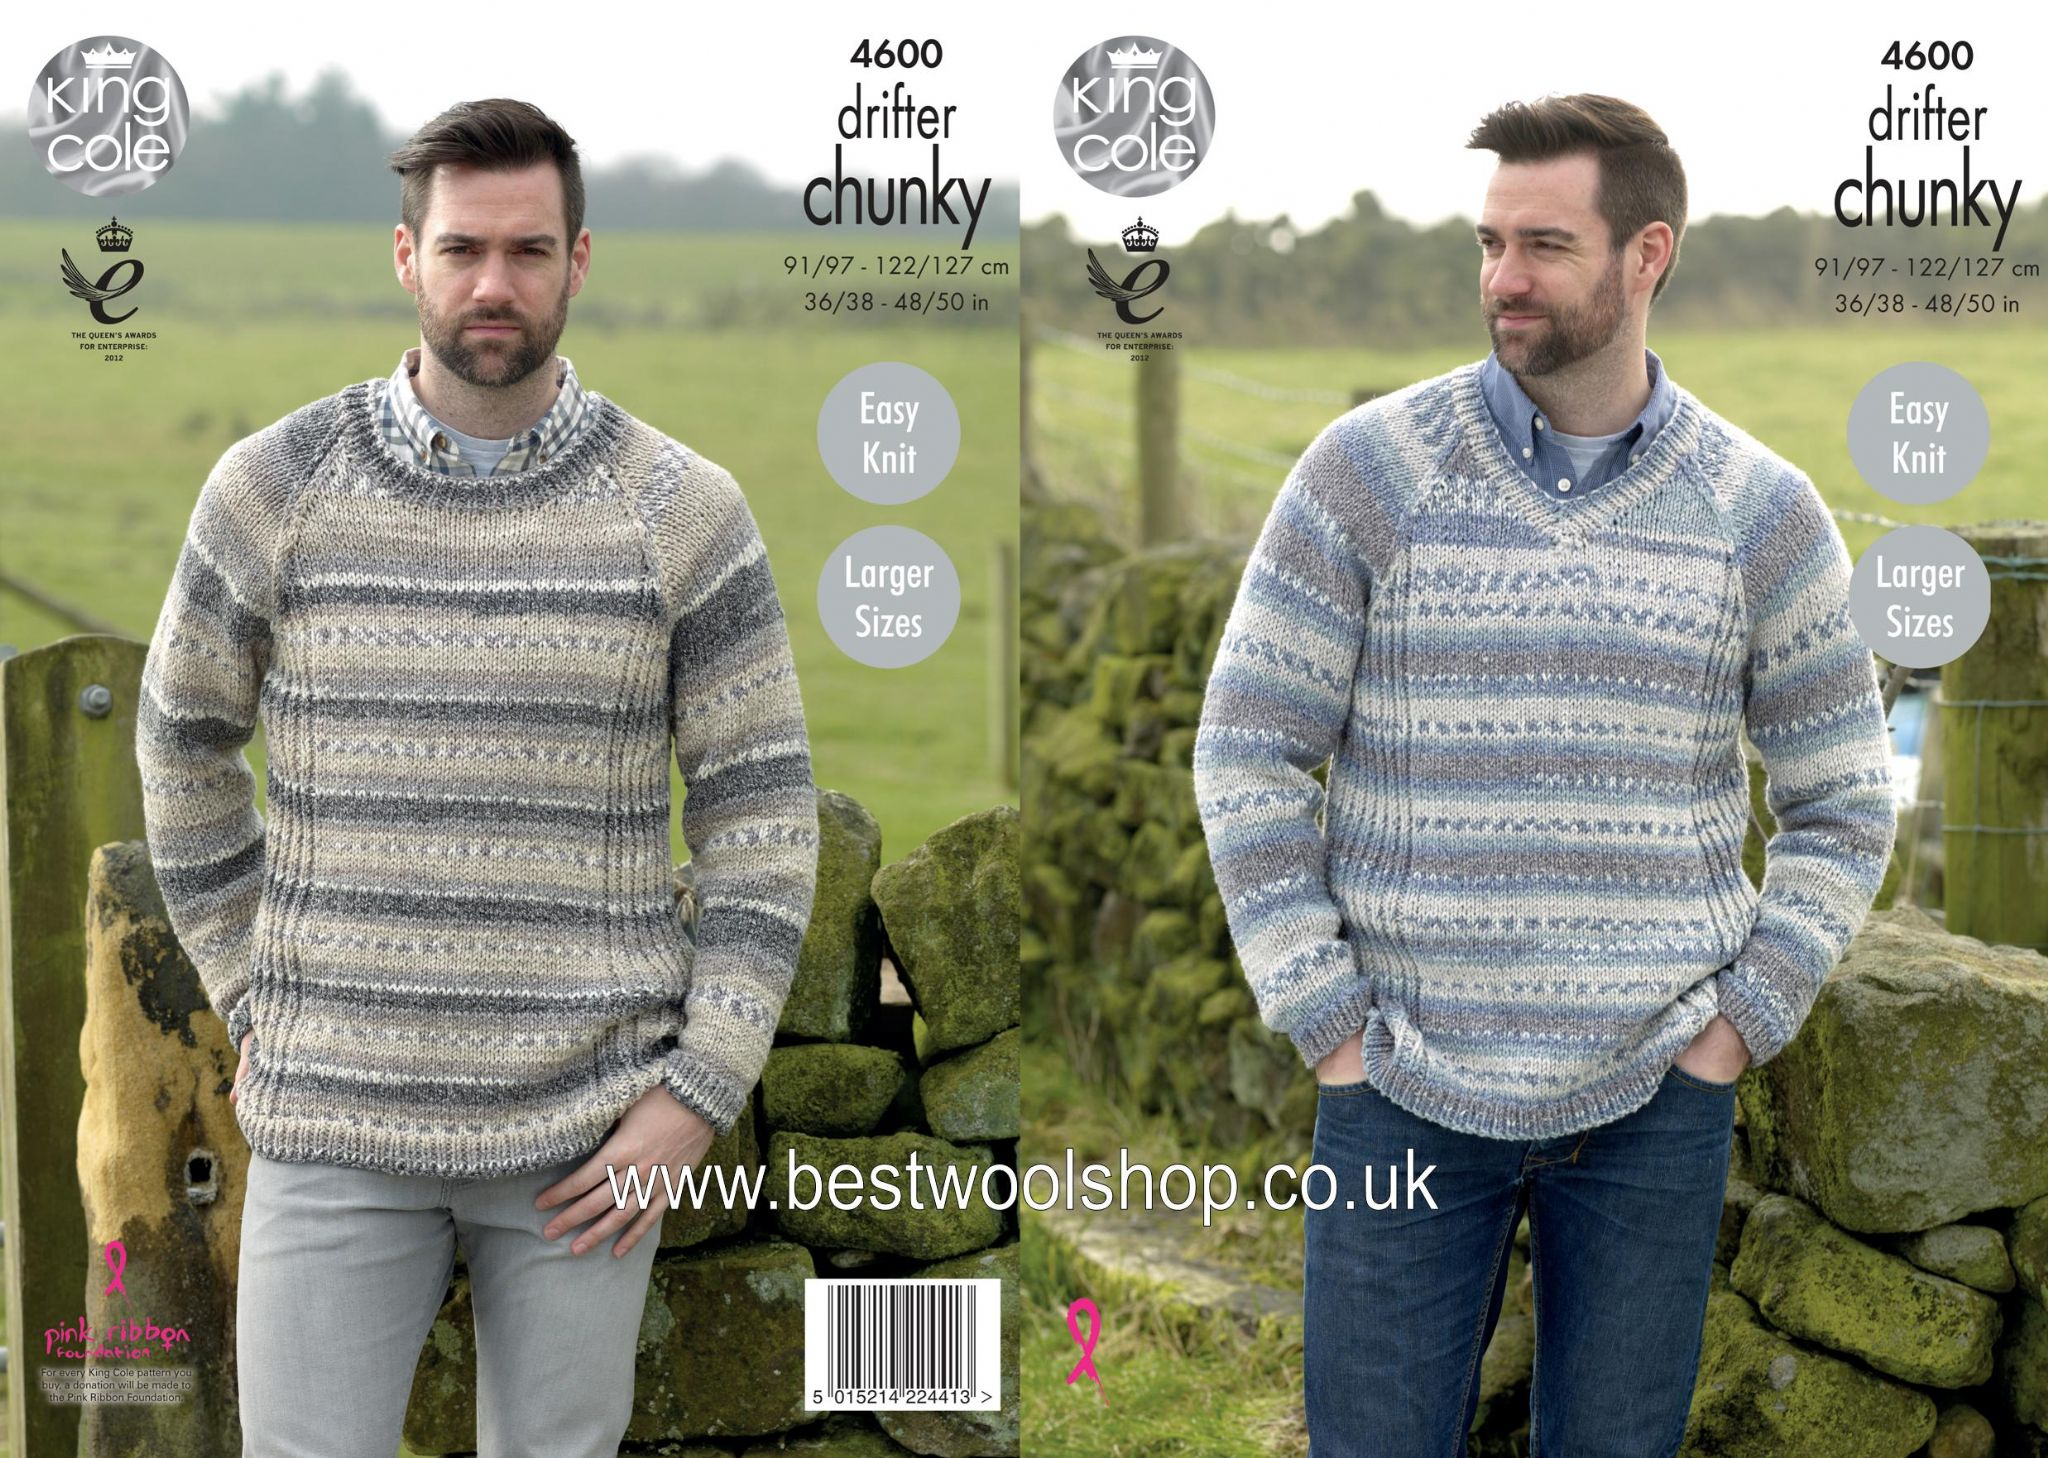 Easy Jumper Knitting Pattern 4600 King Cole Drifter Chunky Easy Knit Mens Round V Neck Sweater Knitting Pattern To Fit Chest 36 To 50